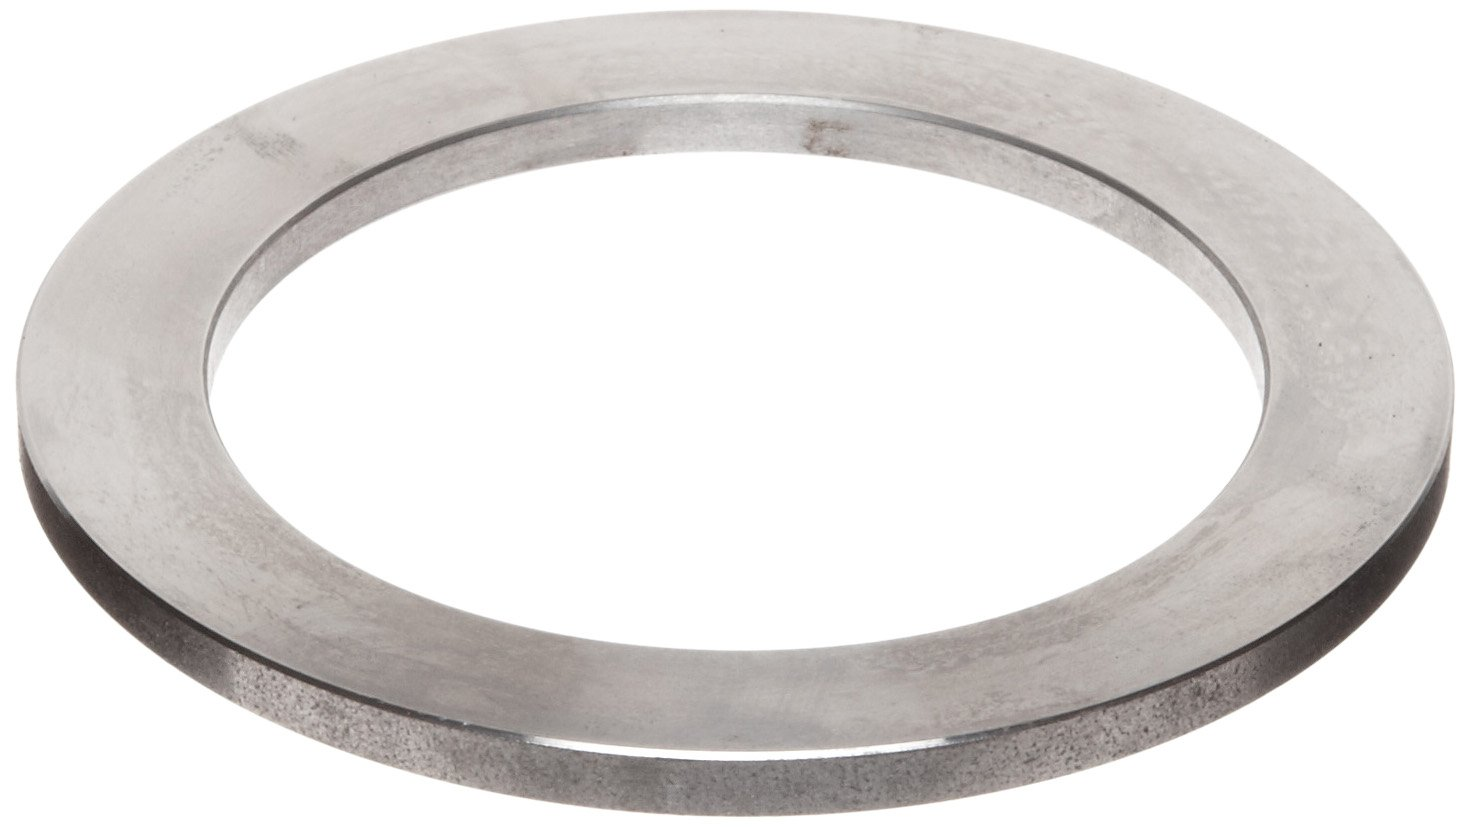 Wide Shim Flat Washer, Steel, 2.750'' ID, 3.750'' OD, 0.187'' Thick (Pack of 5)